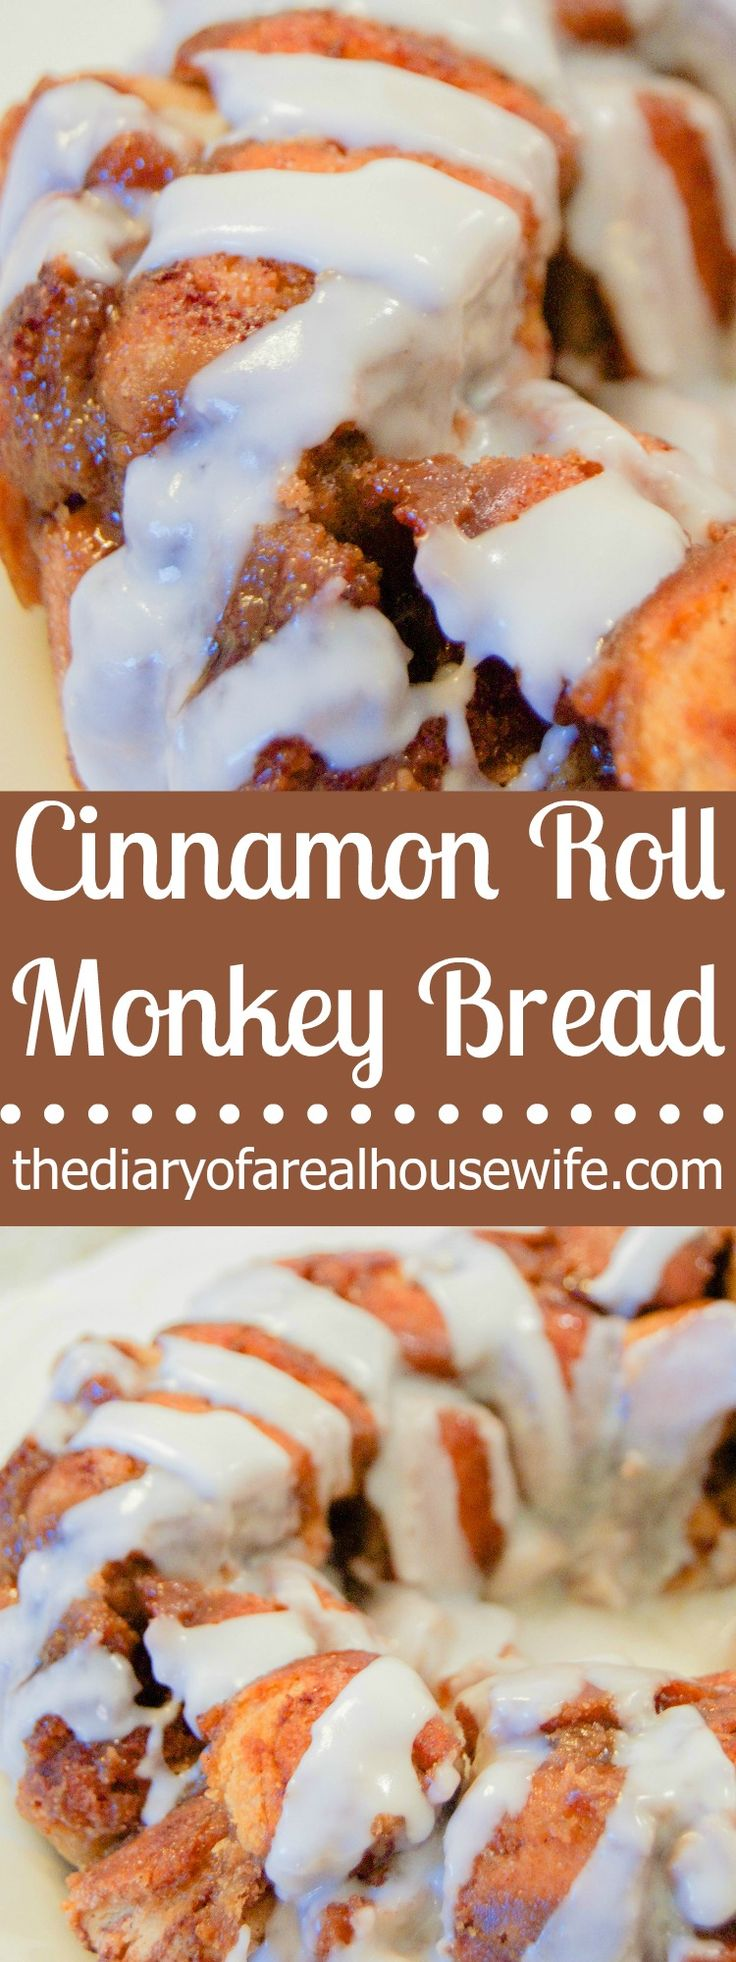 There is something almost sinful about monkey bread! It's so yummy and you just can't stop eating it! Well it got even better with this Cinnamon Roll Monkey Bread covered in icing! Ready to try this delicious easy recipe!